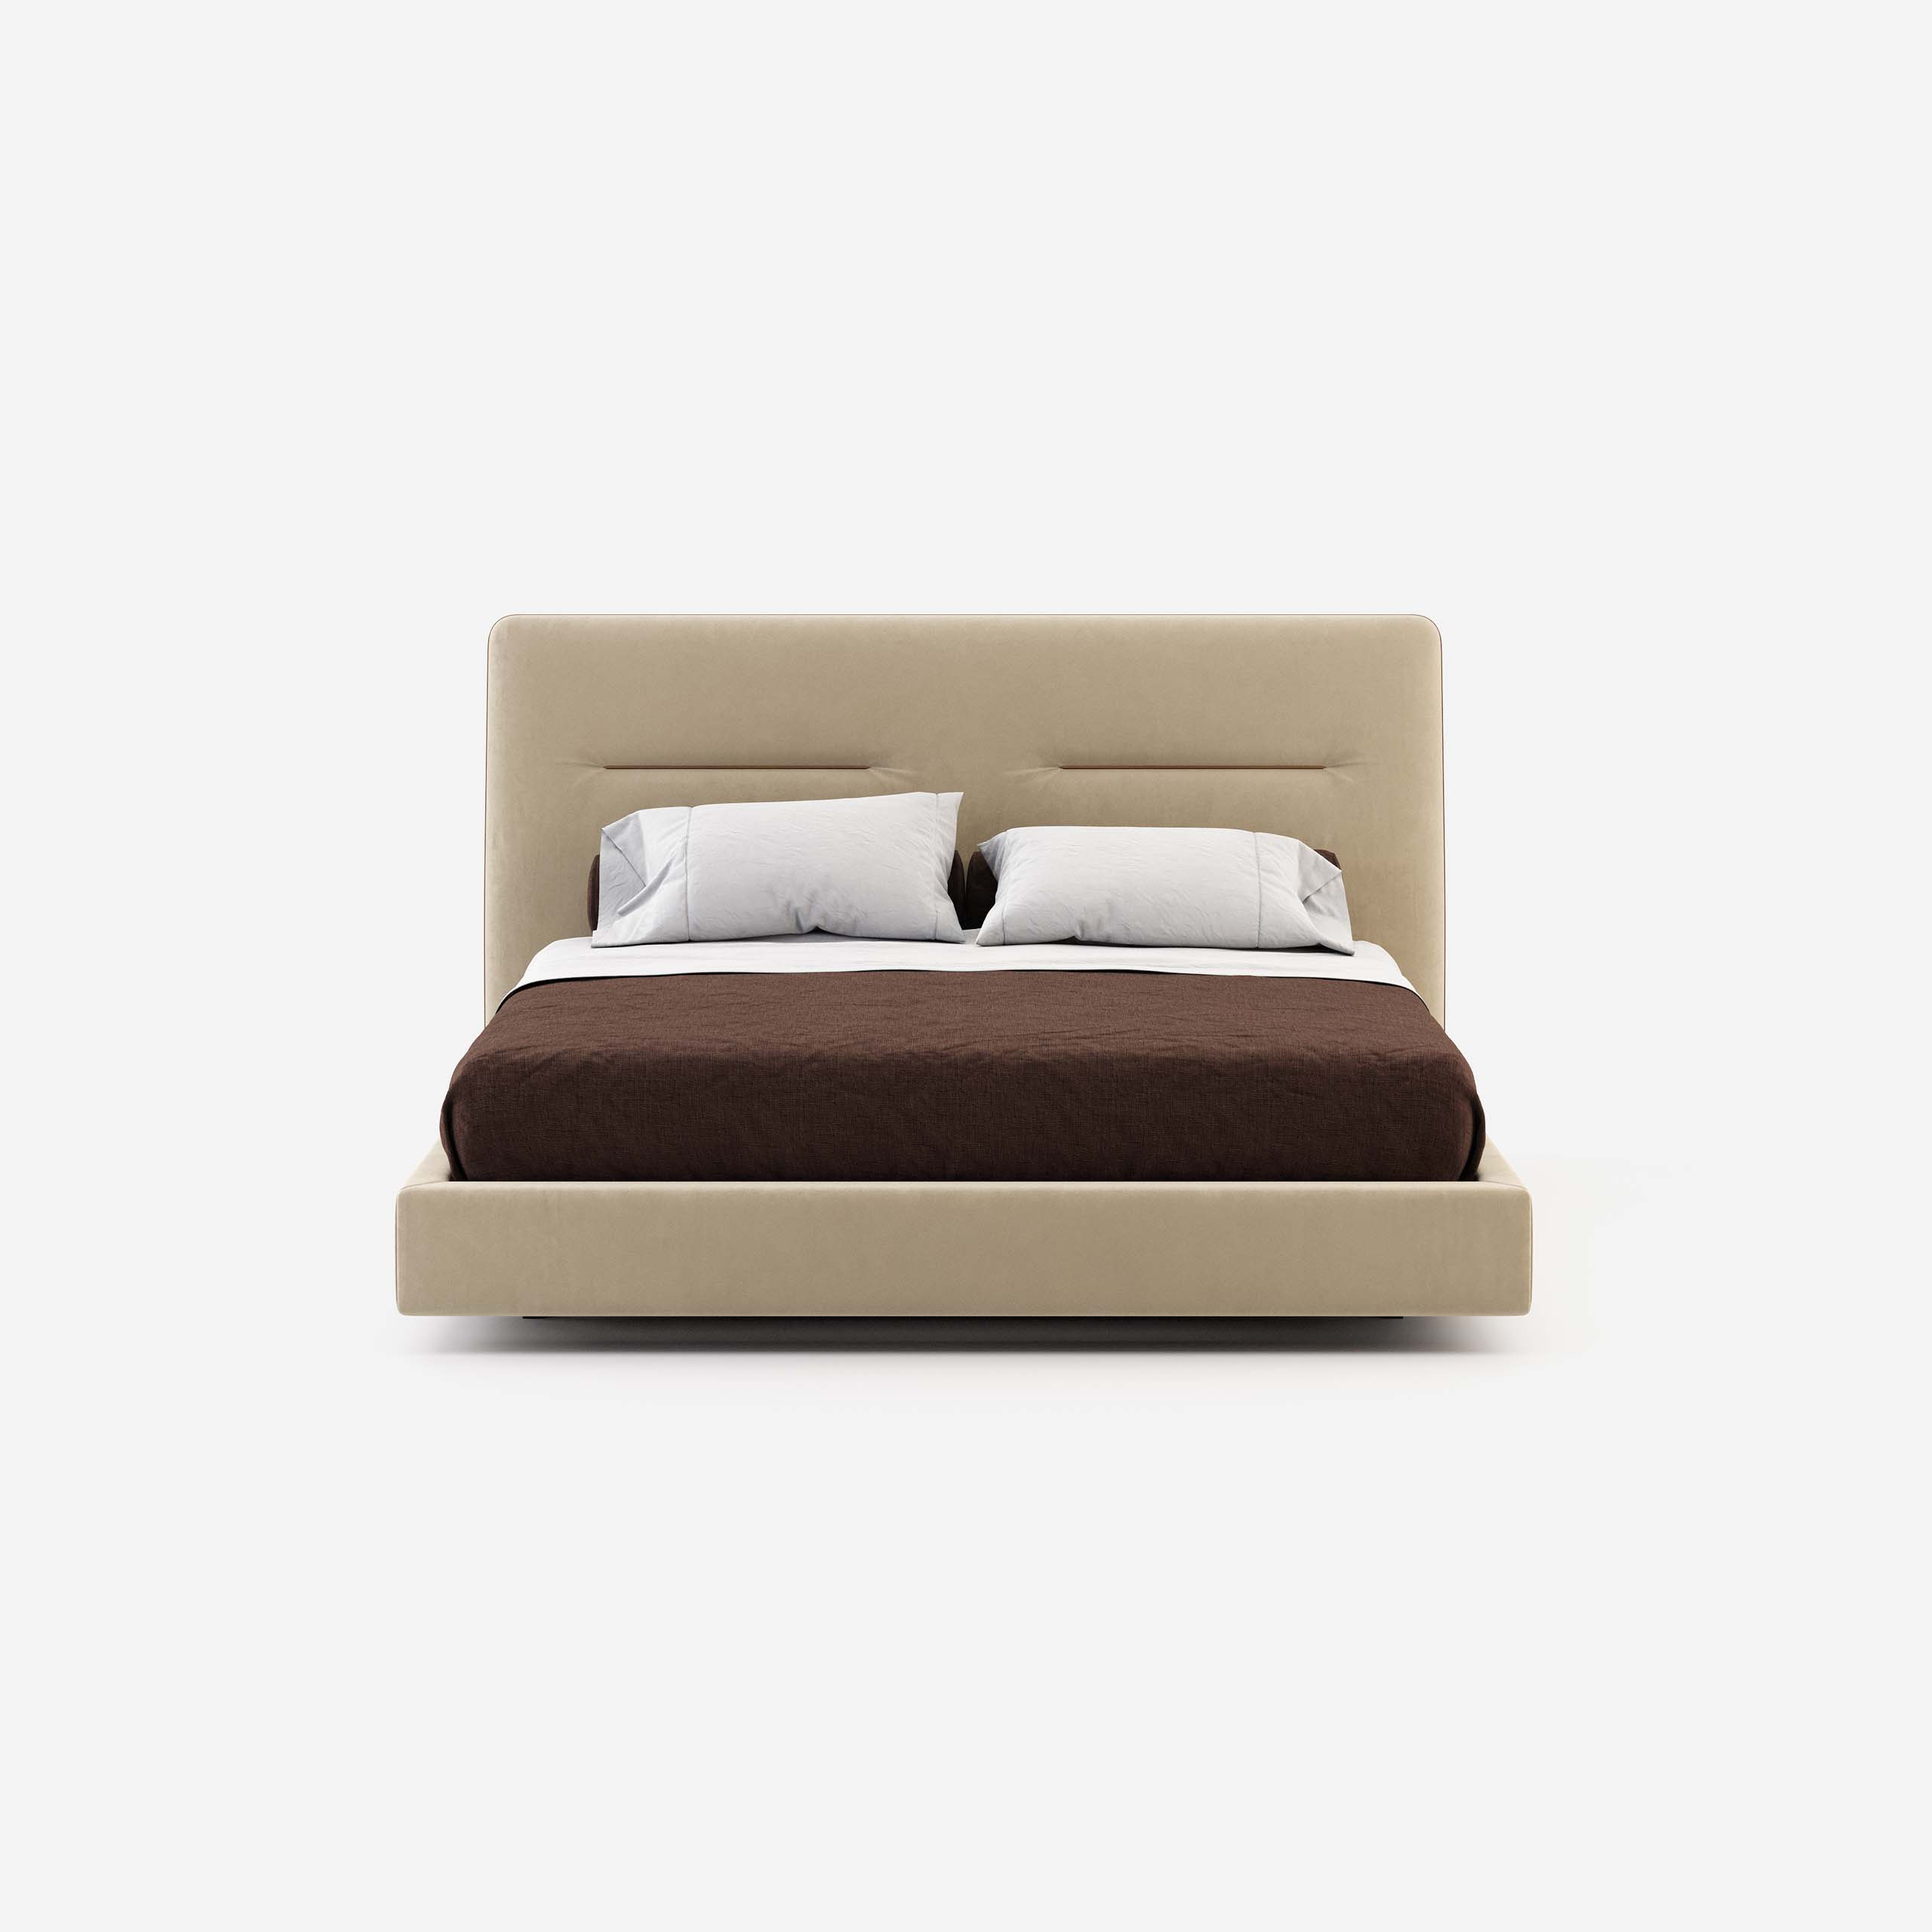 helen-bed-domkapa-new-collection-2021-bedroom-decor (2)